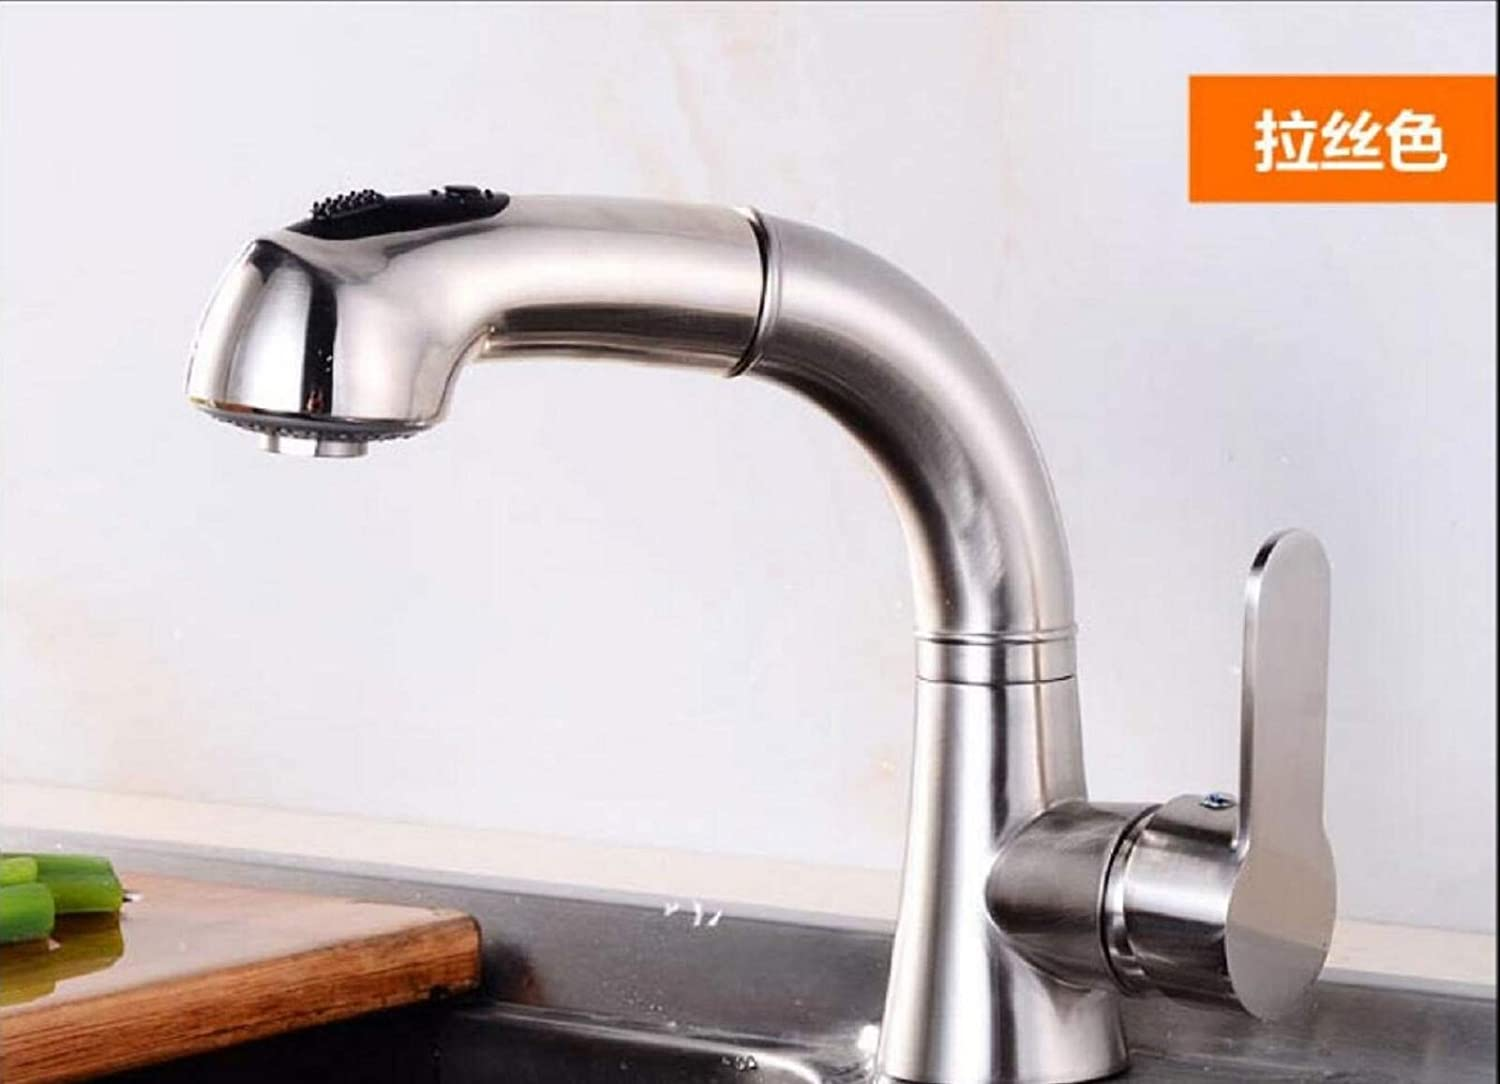 Kitchen Tap golden Faucet Pull Kitchen Dishwasher Pull Faucet Cold and Hot redation Kitchen Taps Kitchen Sink Mixer Taps Basin Tap